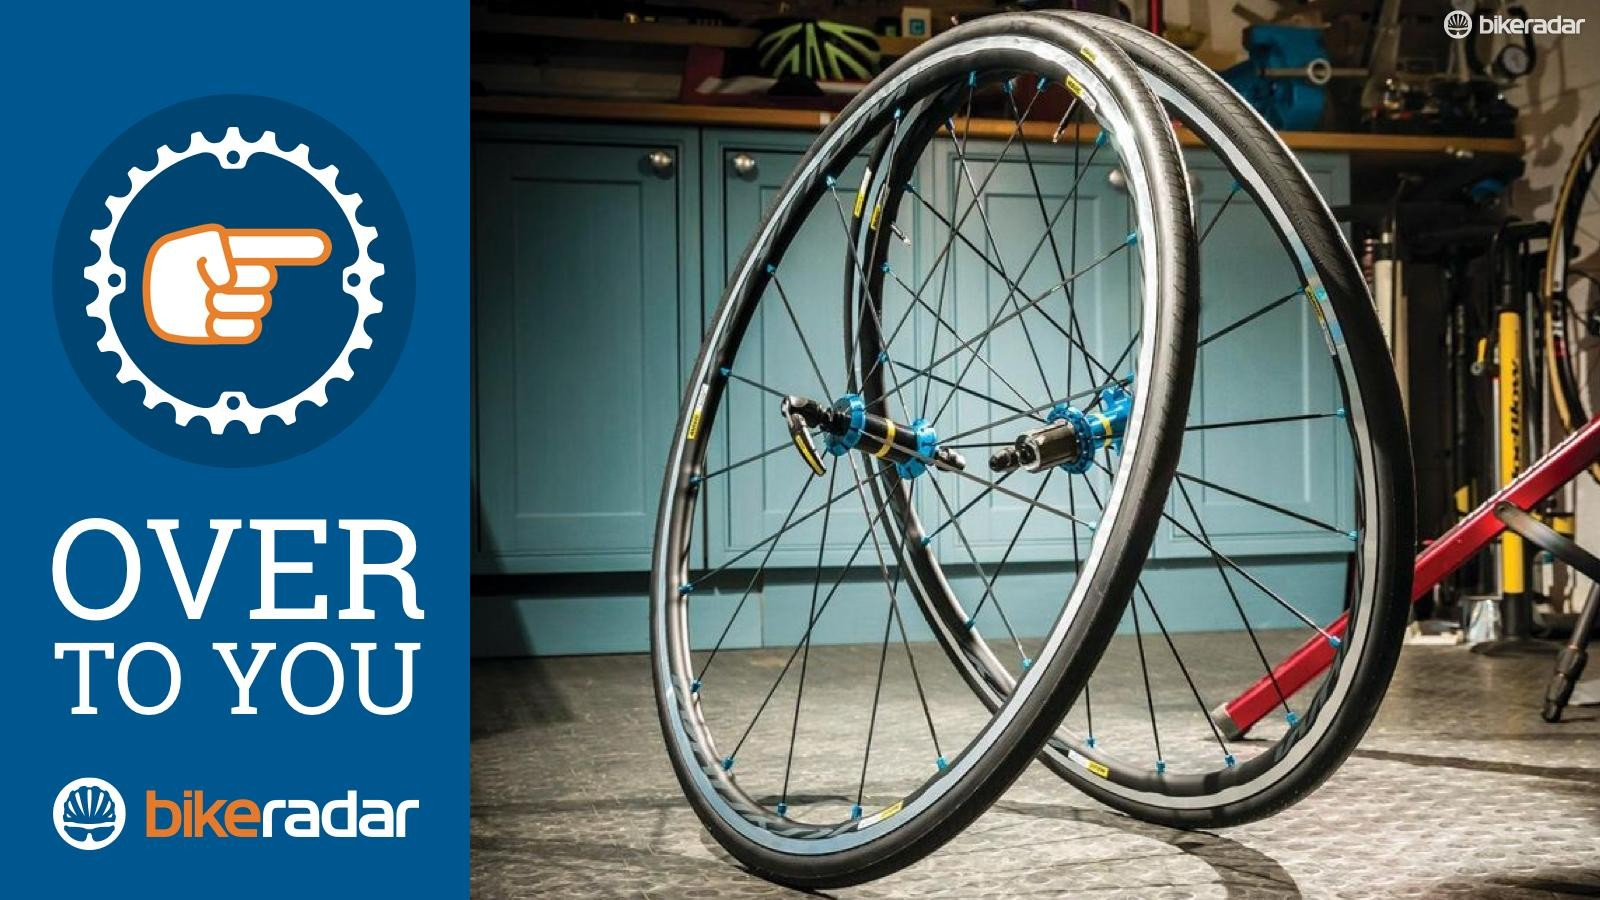 Over to you: are wider rims marketing hype or a real-world benefit?